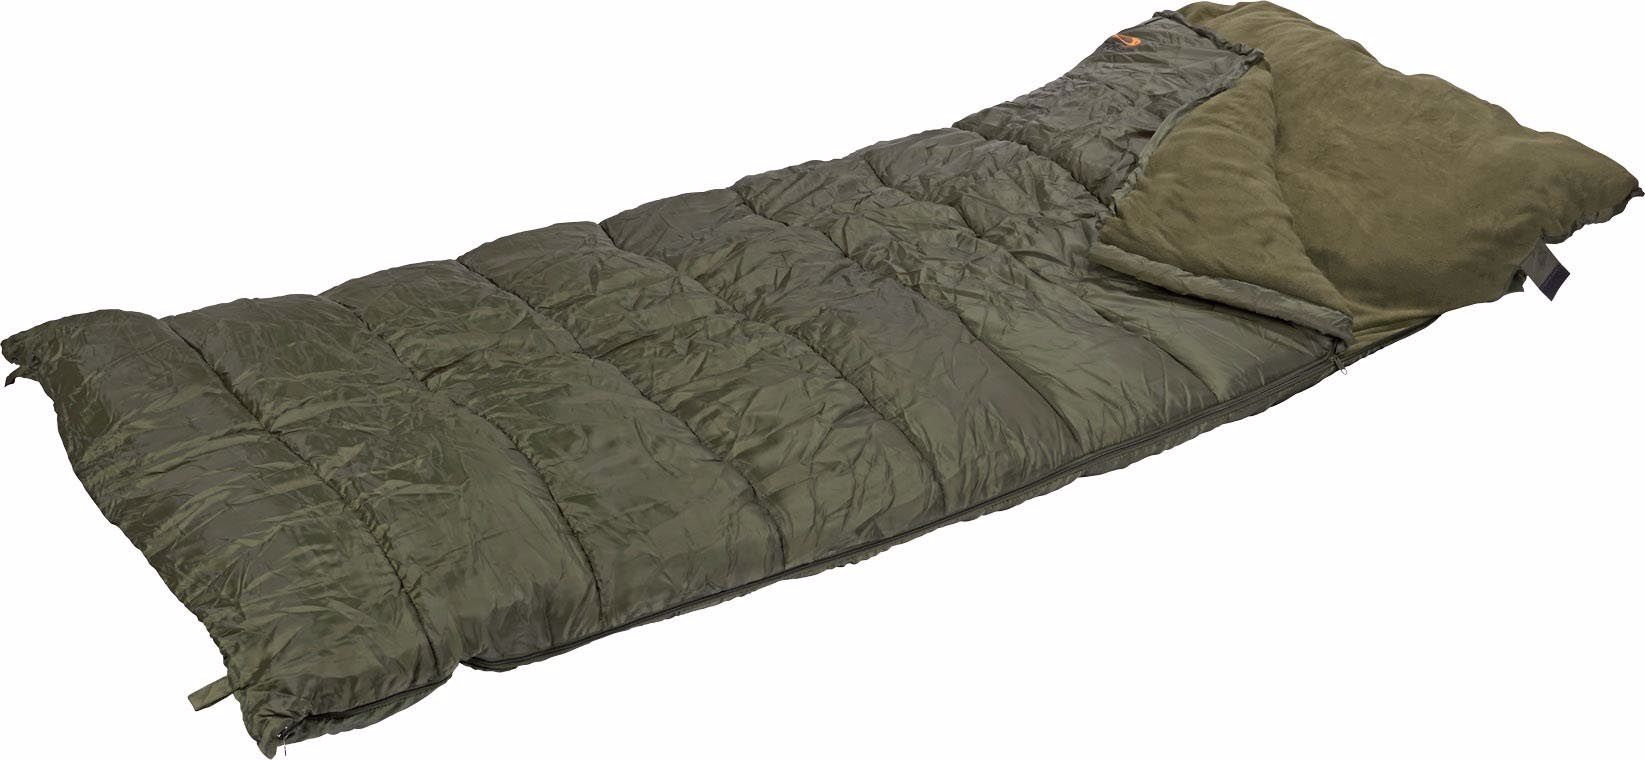 Sweet Dreams on the Trail Part I: Sleeping Bag Selection